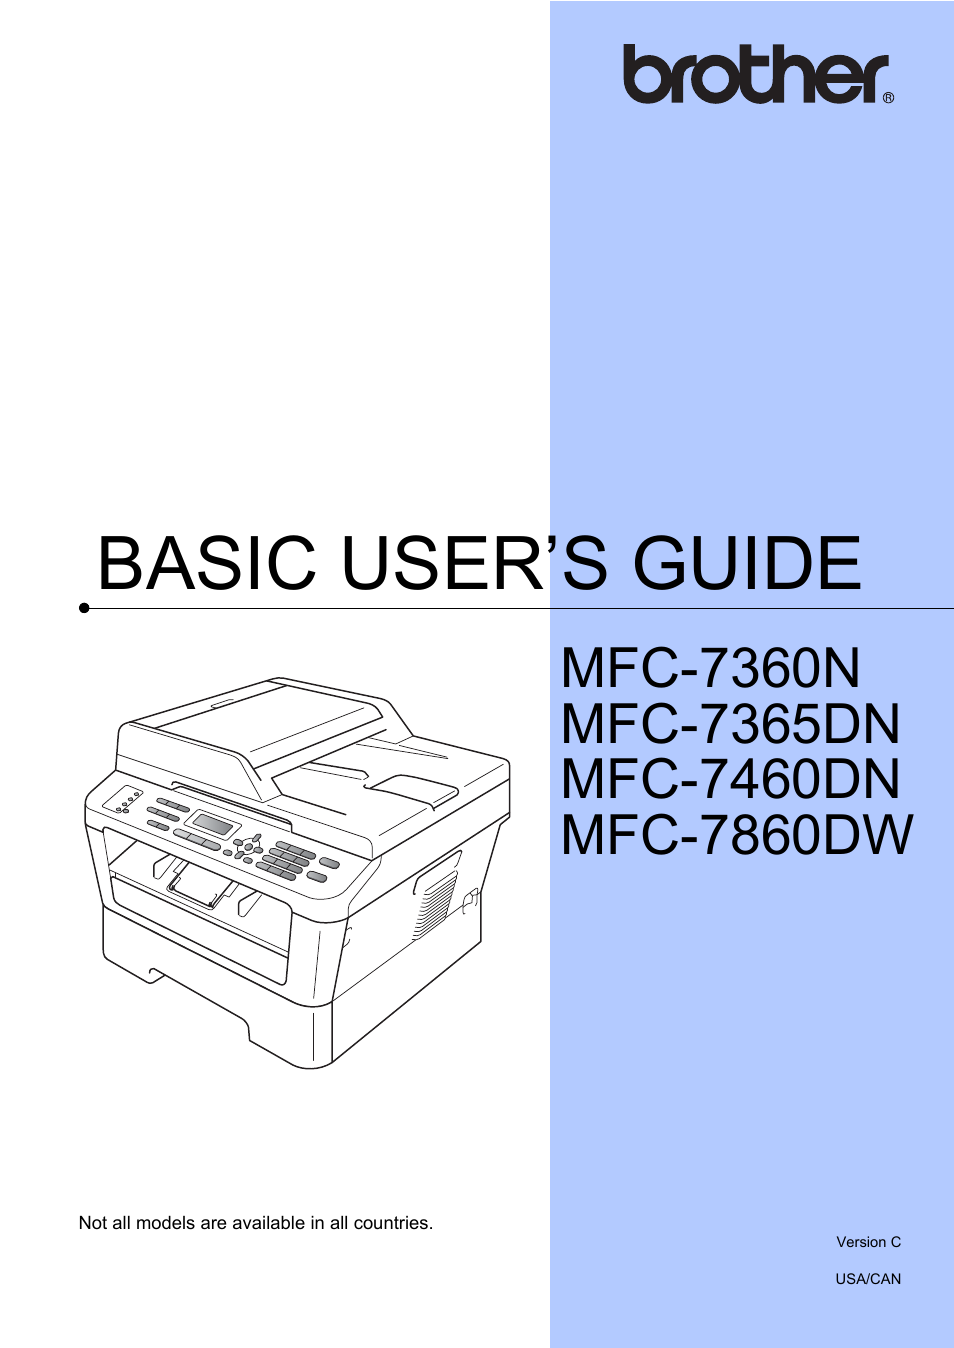 brother mfc 7860dw user manual 162 pages also for mfc 7360n rh manualsdir com Brother MFC- 7860DW brother mfc-7360n network user guide